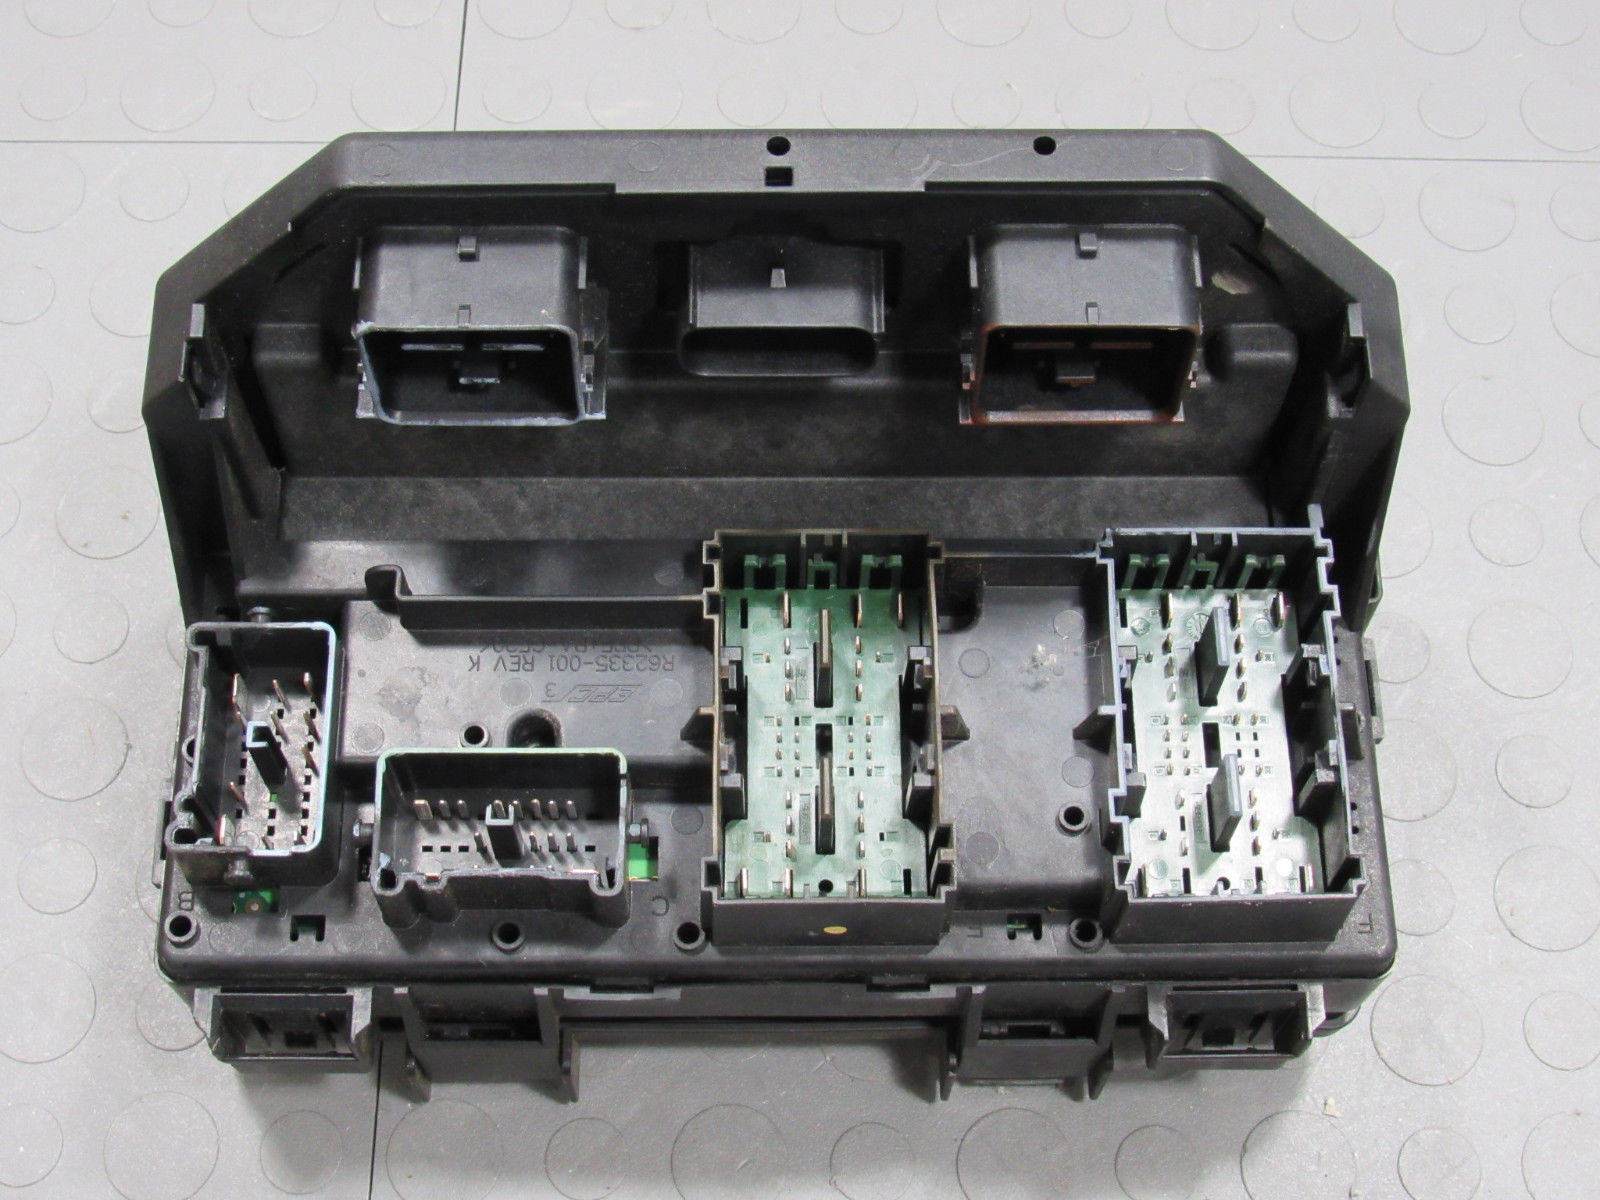 7C9B6 2012 Jeep Liberty Jet Fuse Box | Wiring LibraryWiring Library